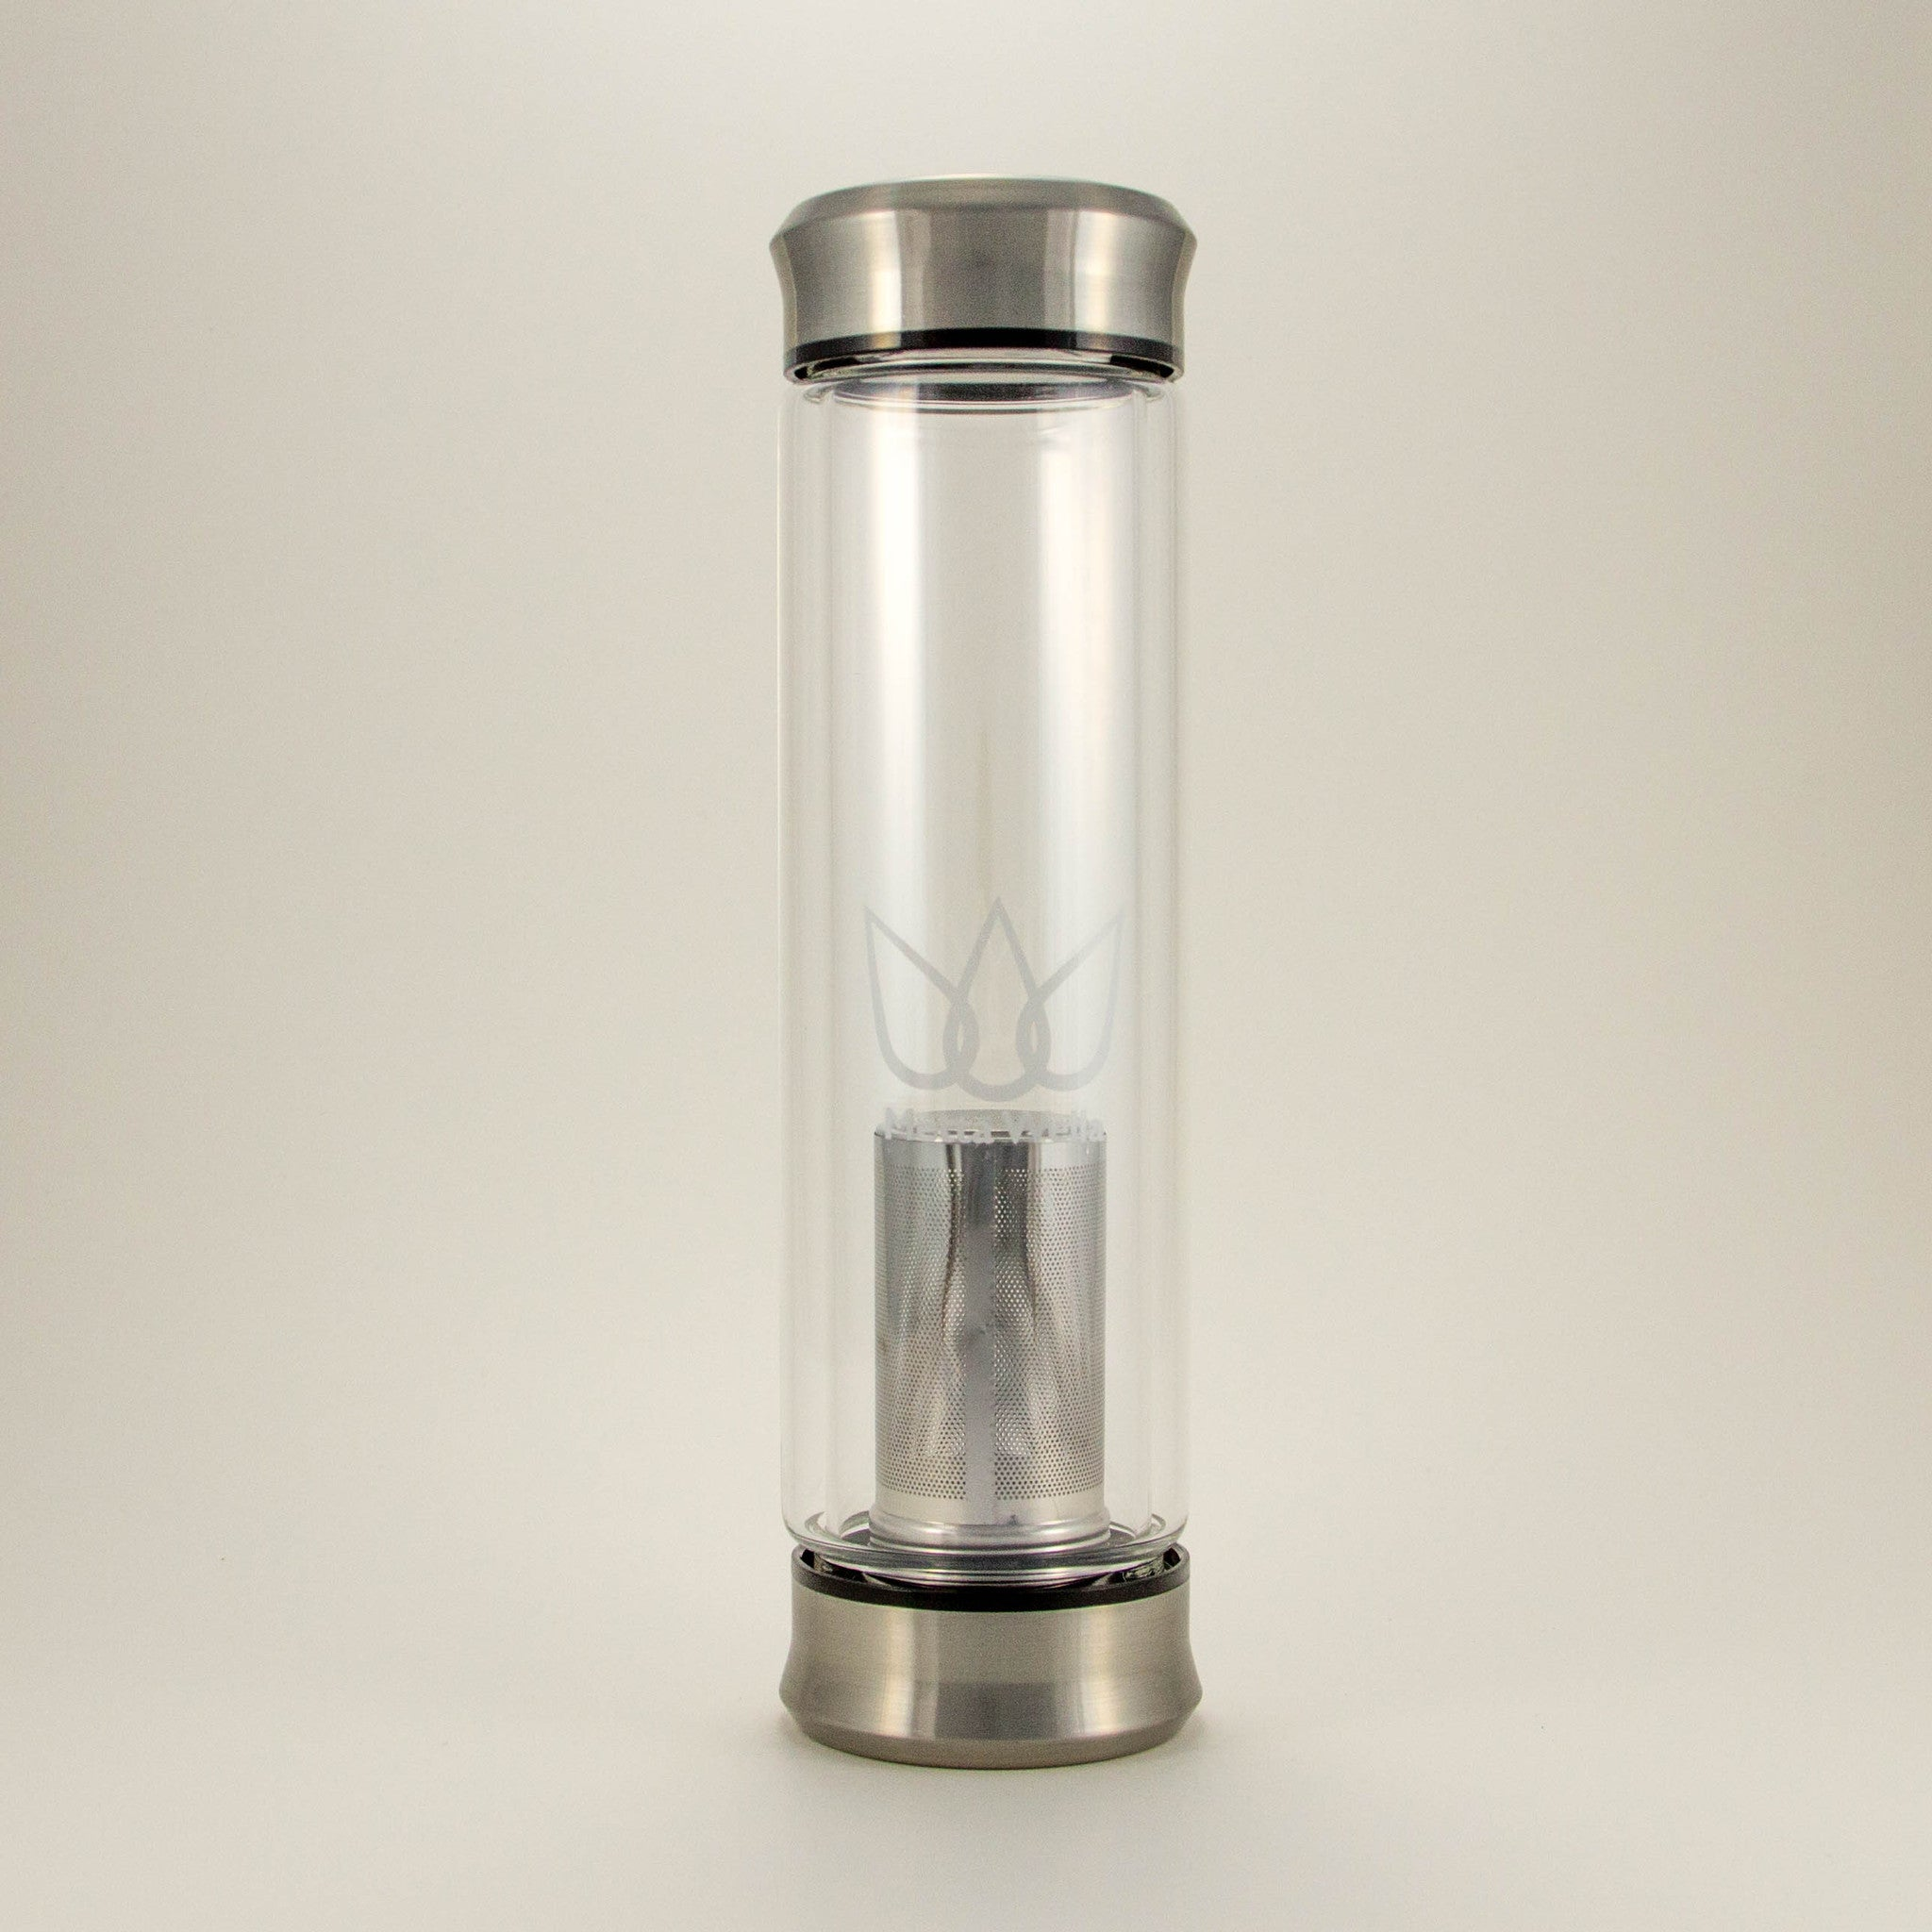 San Fran - Double Walled Vacuum Insulated Glass Infuser Bottle